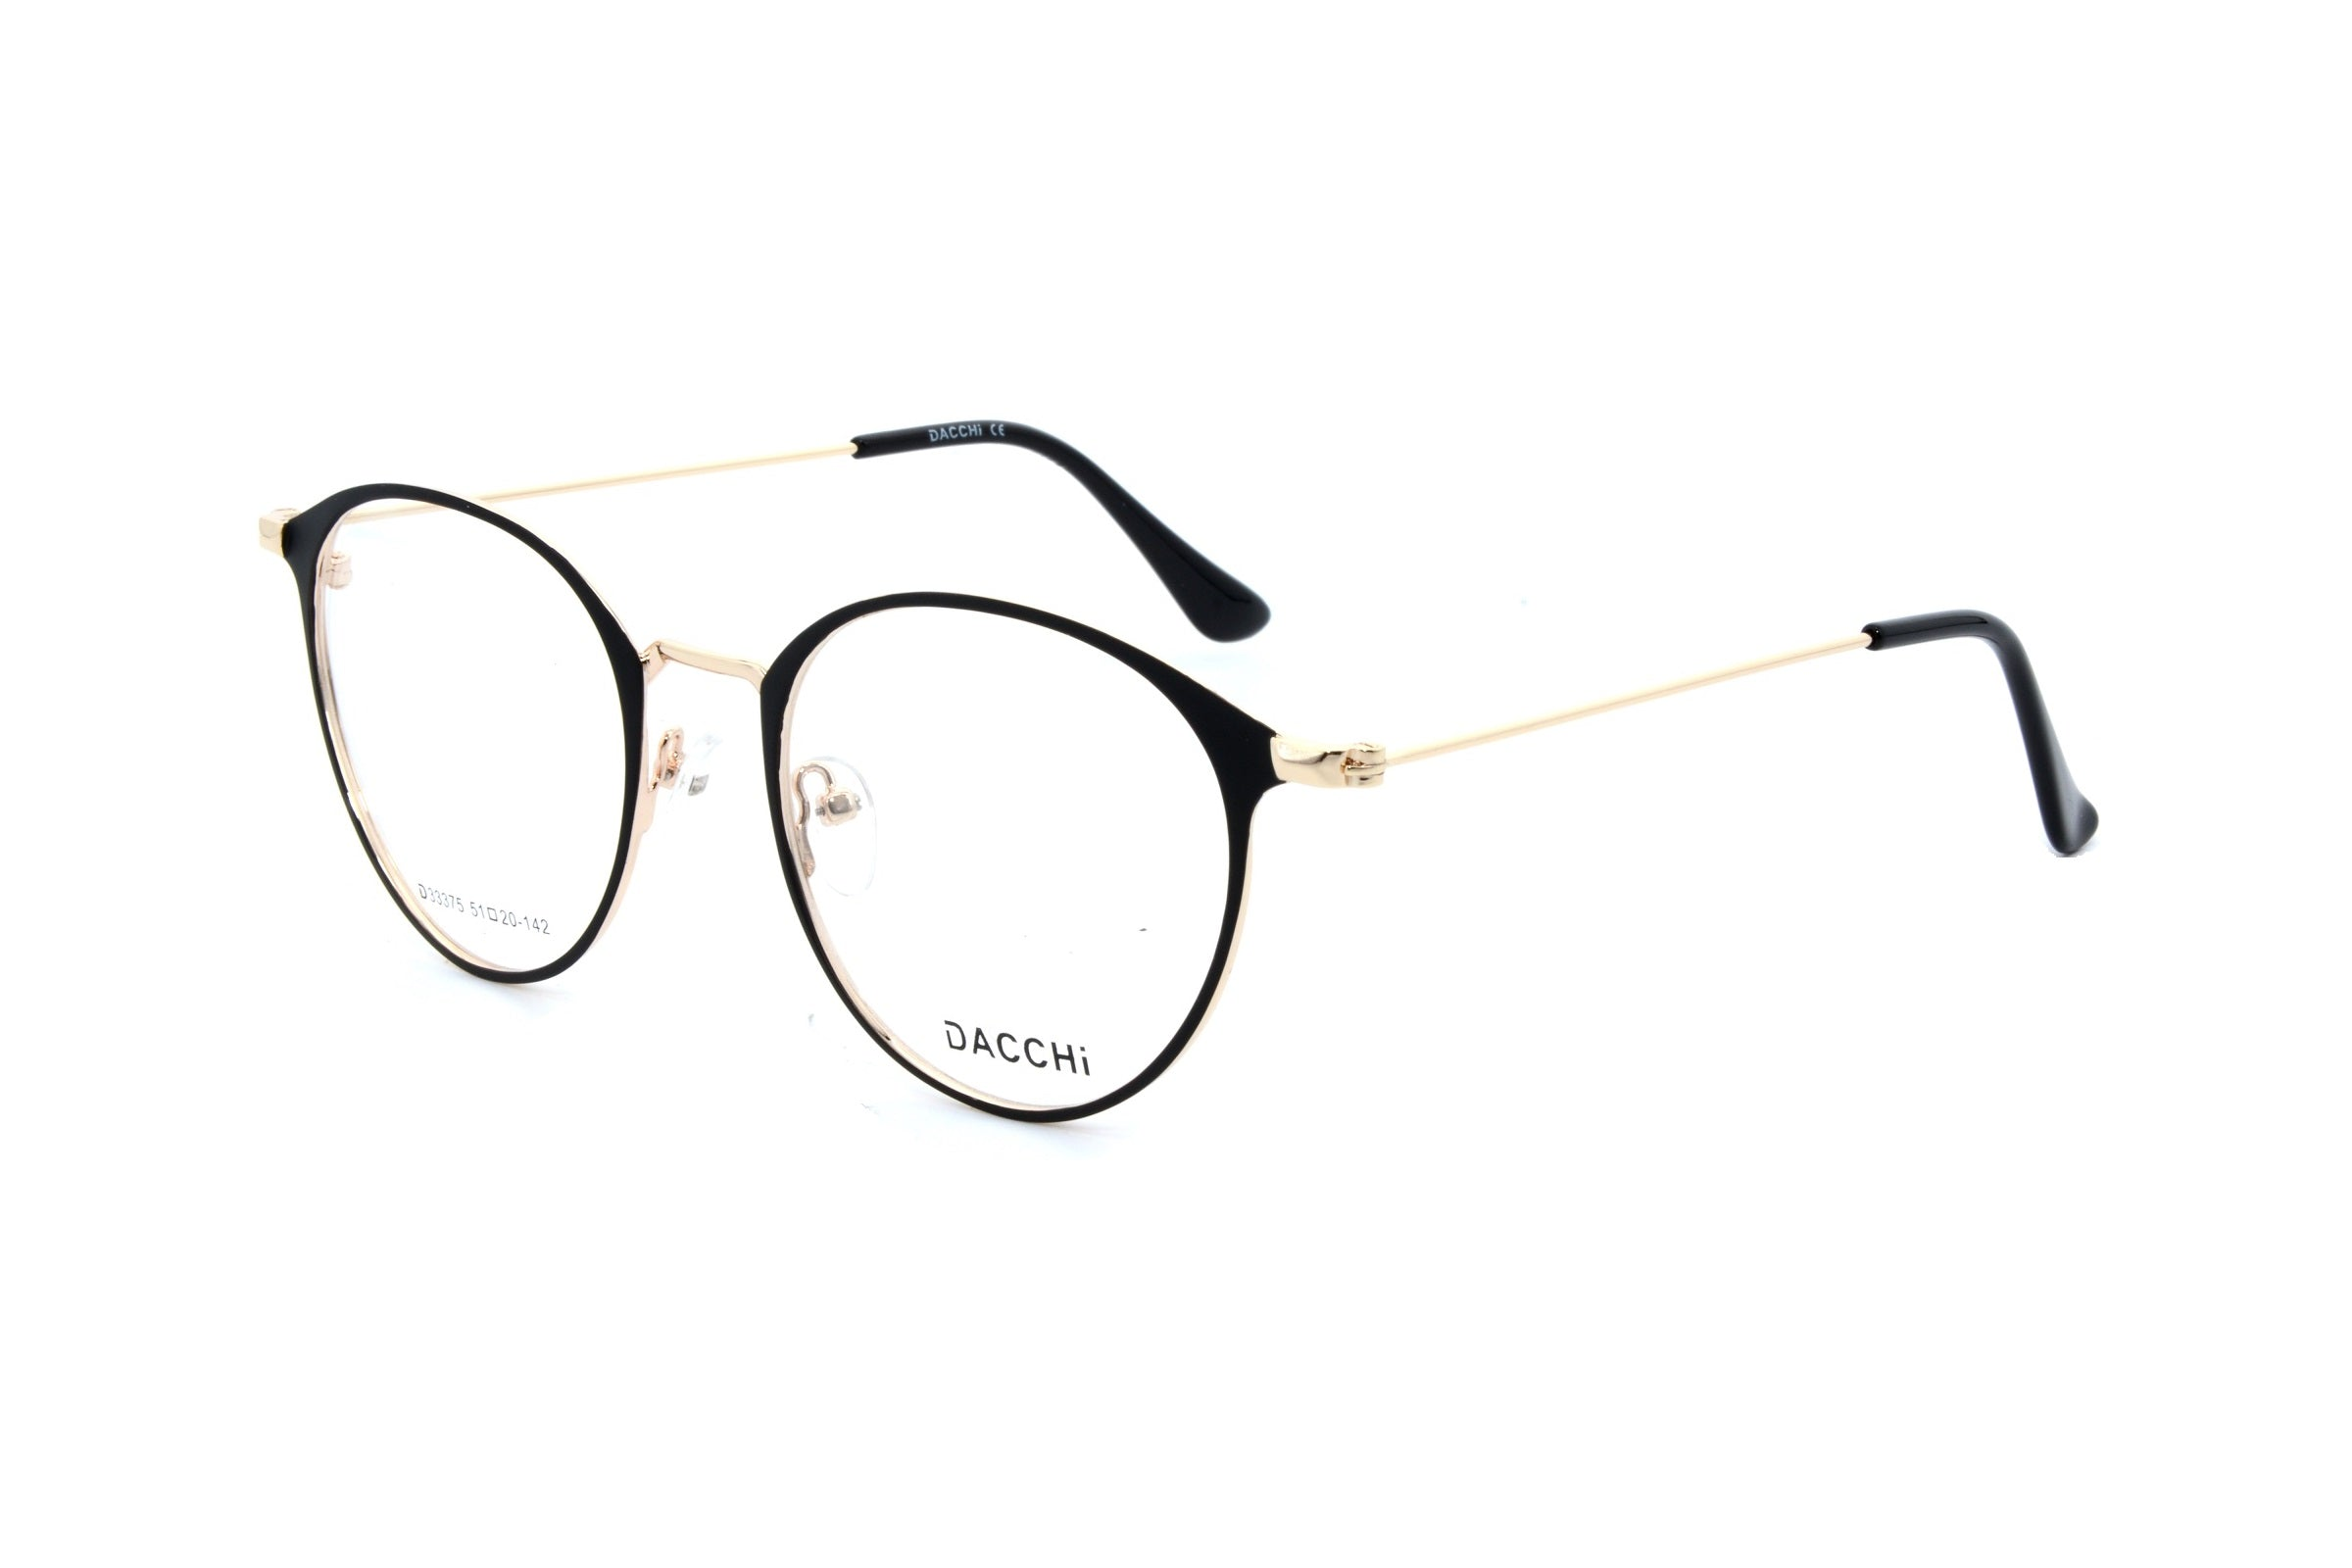 Dacchi eyewear 33375, C1 - Optics Trading